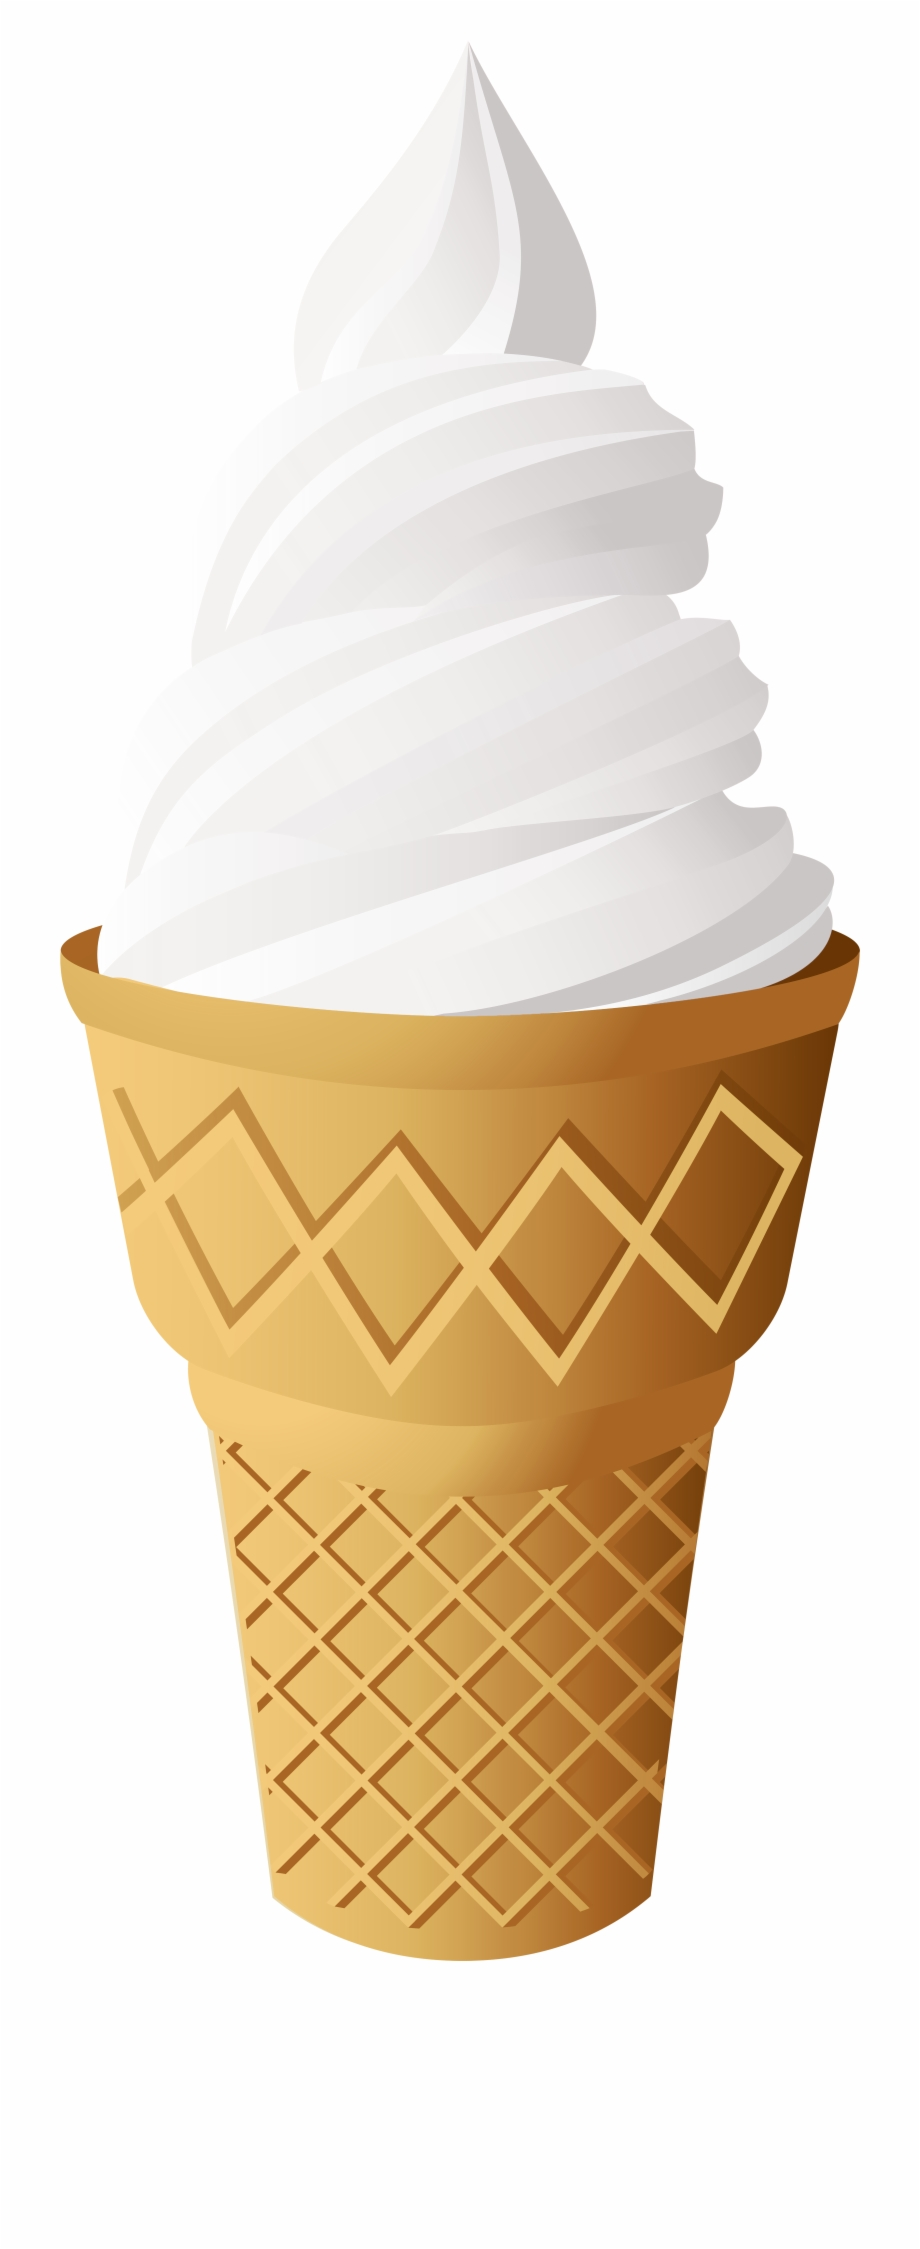 Ice cream cone clipart png picture library stock Vanilla Ice Cream Cone Png Clip Art - Vanilla Ice Cream ... picture library stock